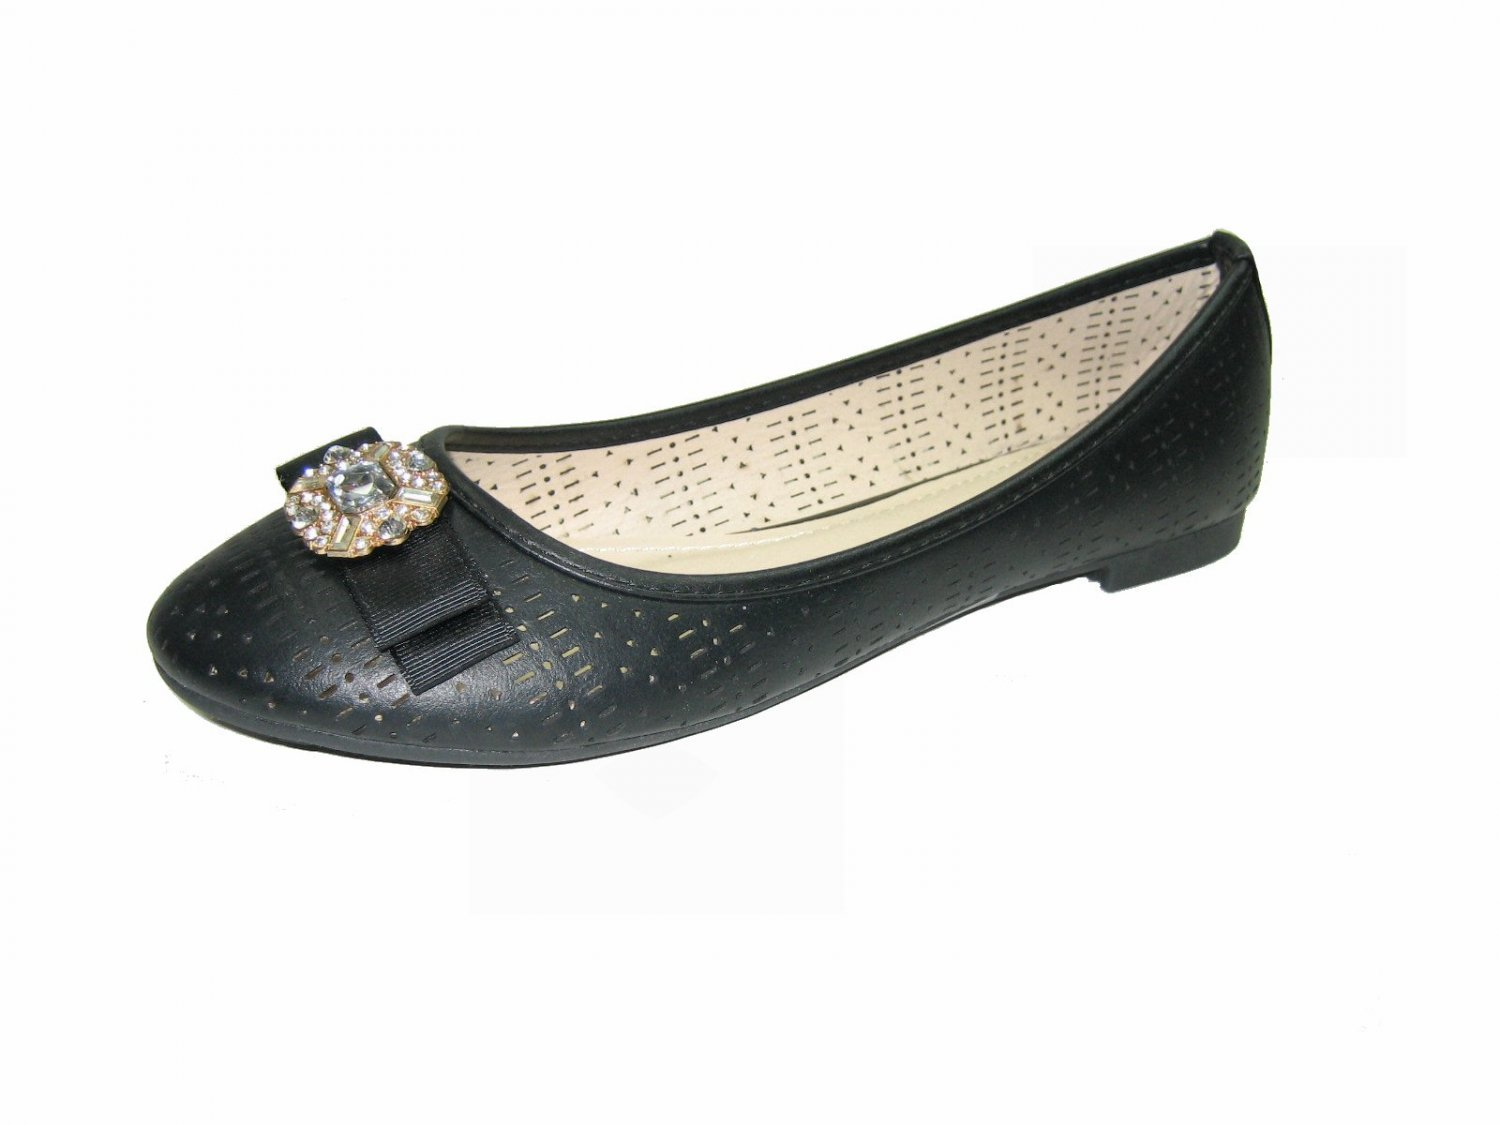 Top Moda SB-25 ballerina flats slip on black pumps rhinestone bejeweled bow toe shoes size 7